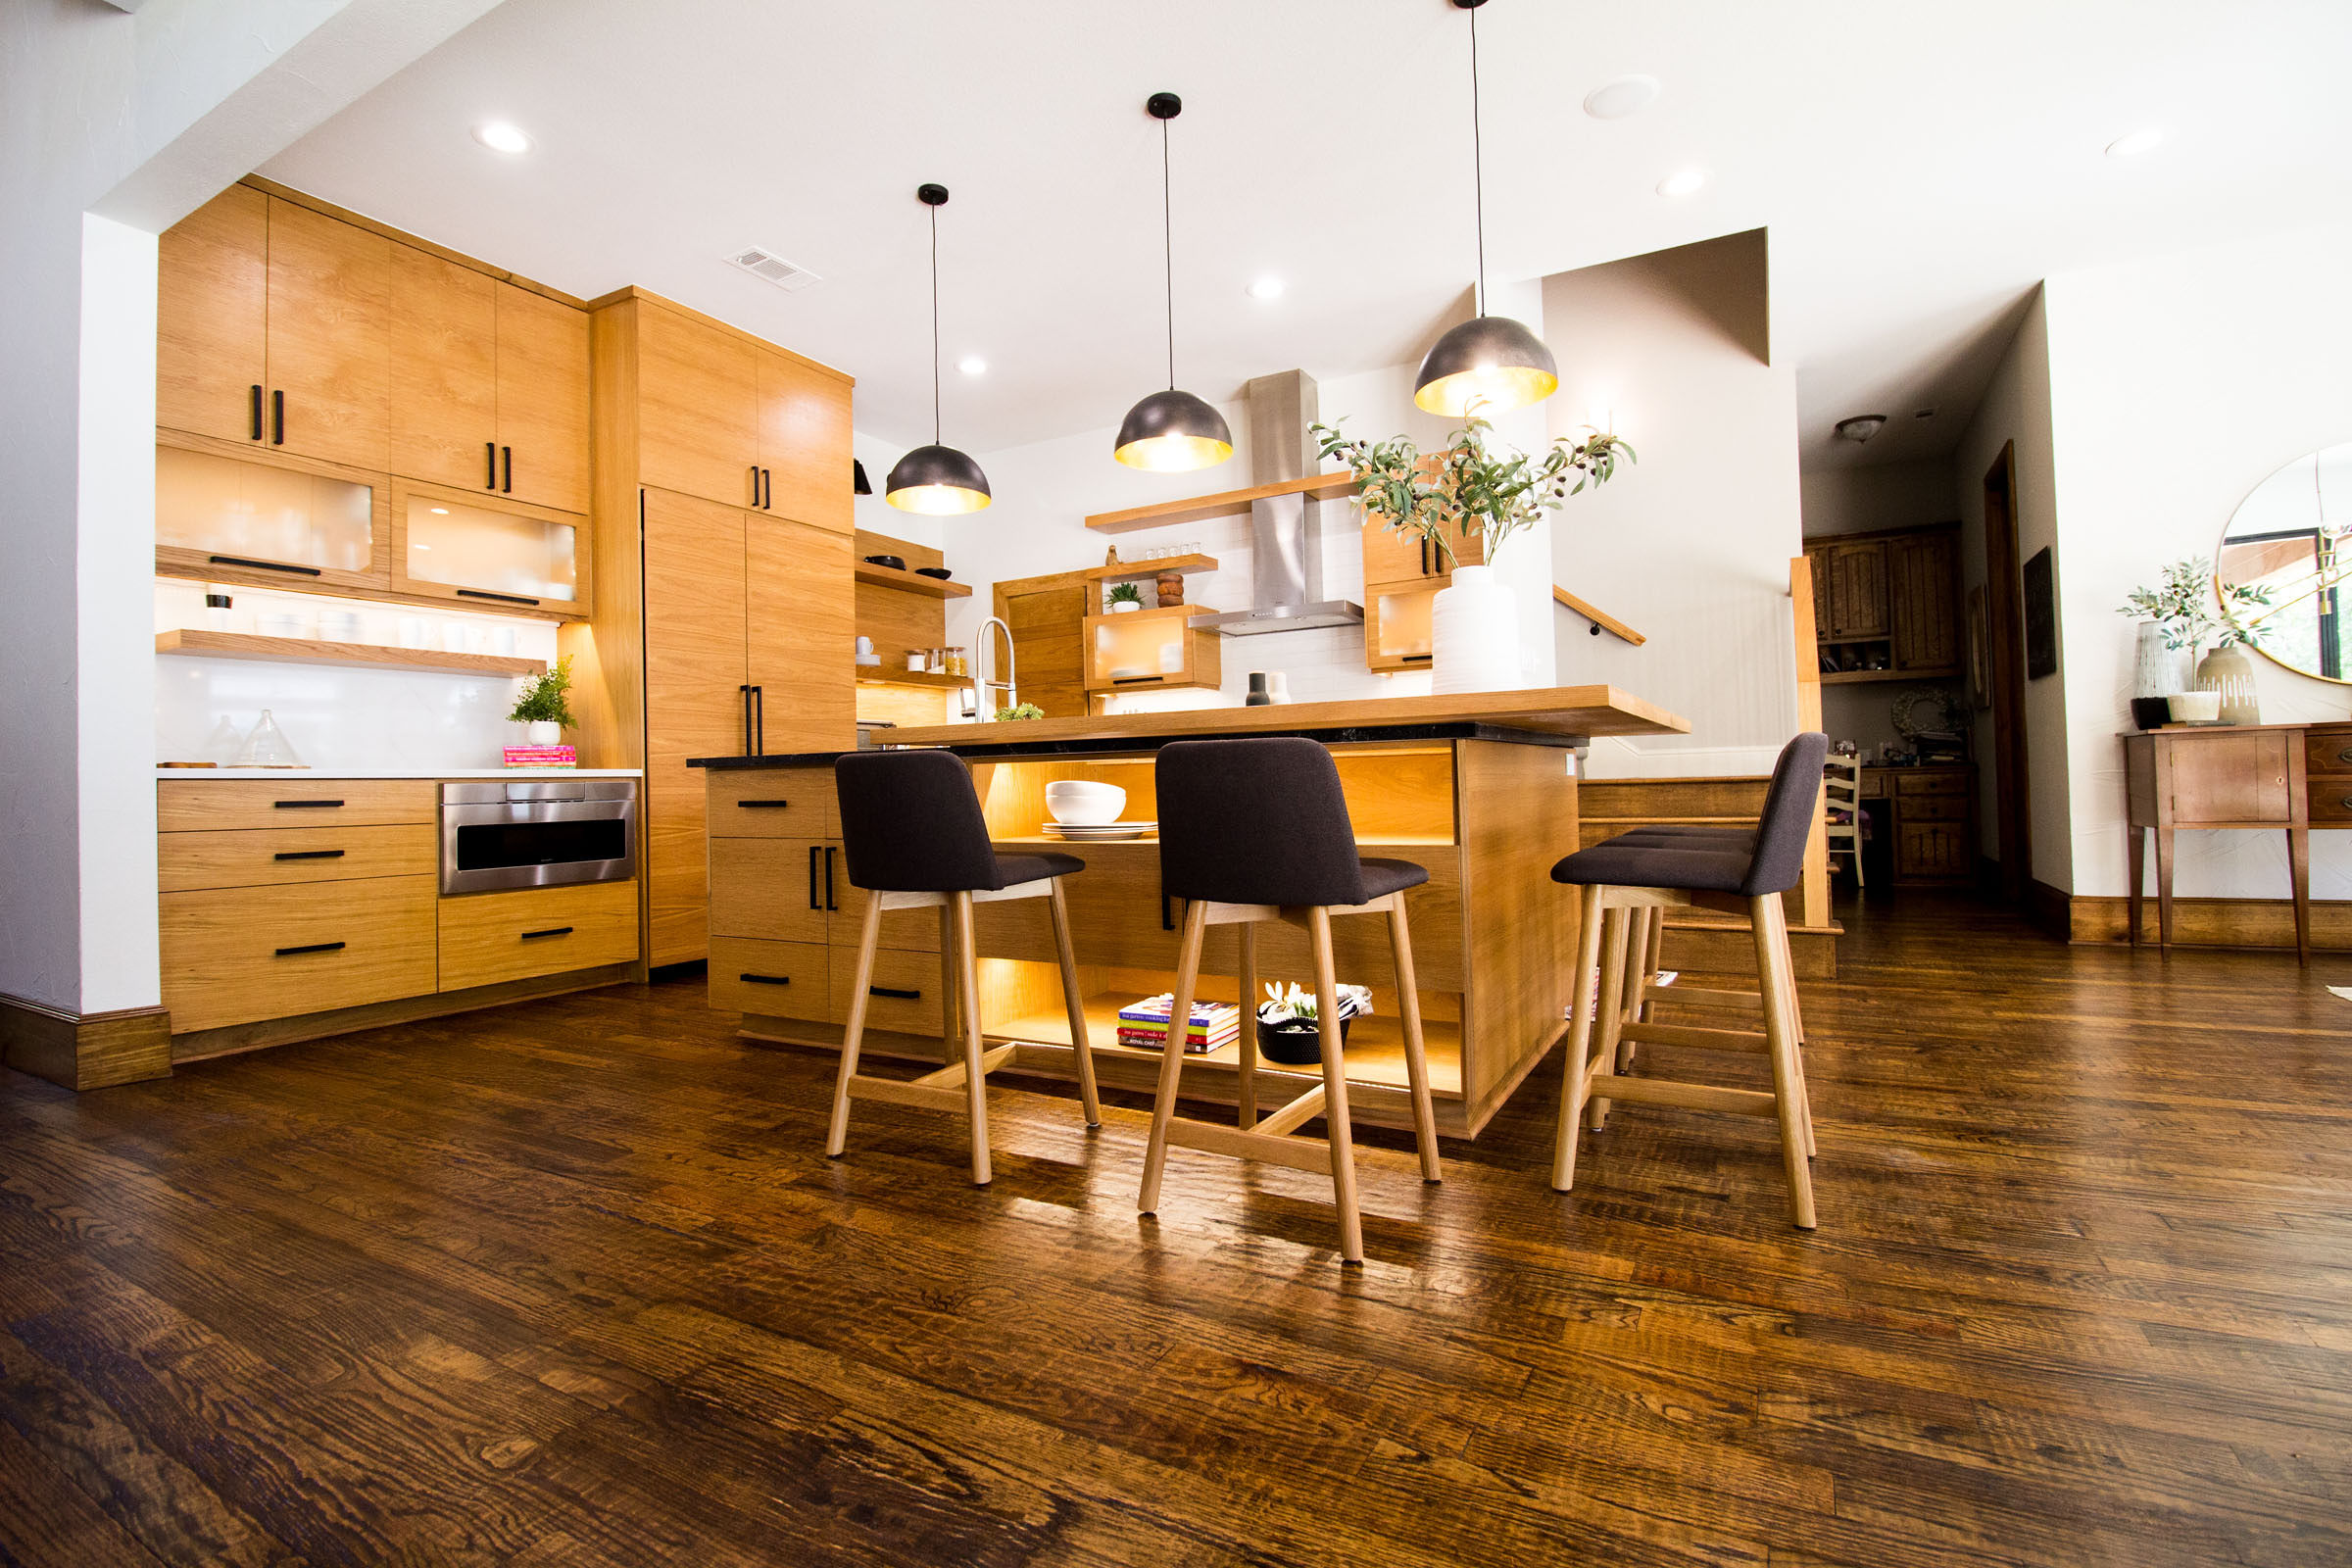 The centerpiece of the kitchen is the unique island with lots of storage, exposed cabinet space, black cloth bar stools, and under lighting